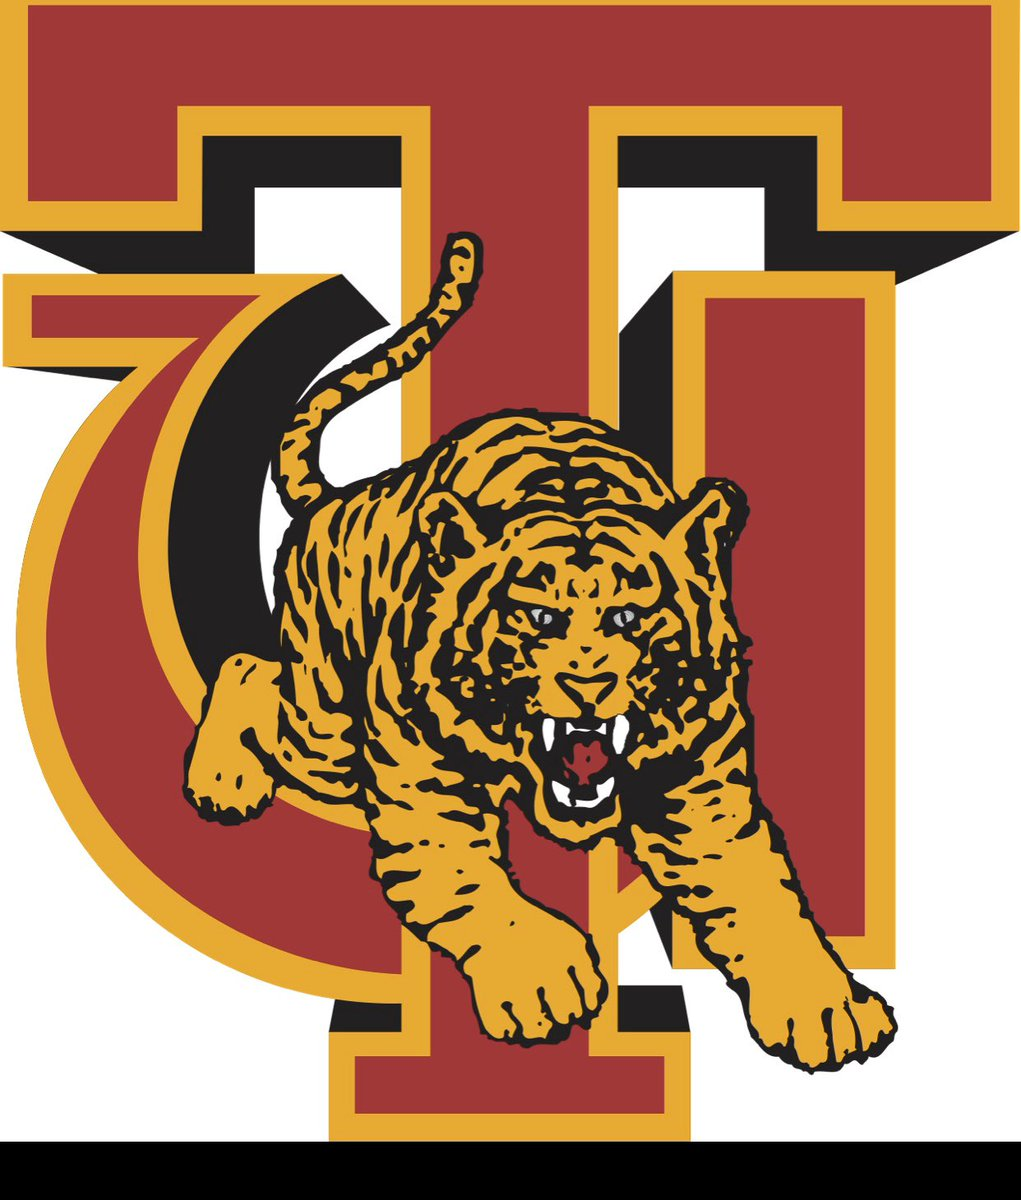 Blessed to have received an offer from Tuskegee University!⚾️ #TU24